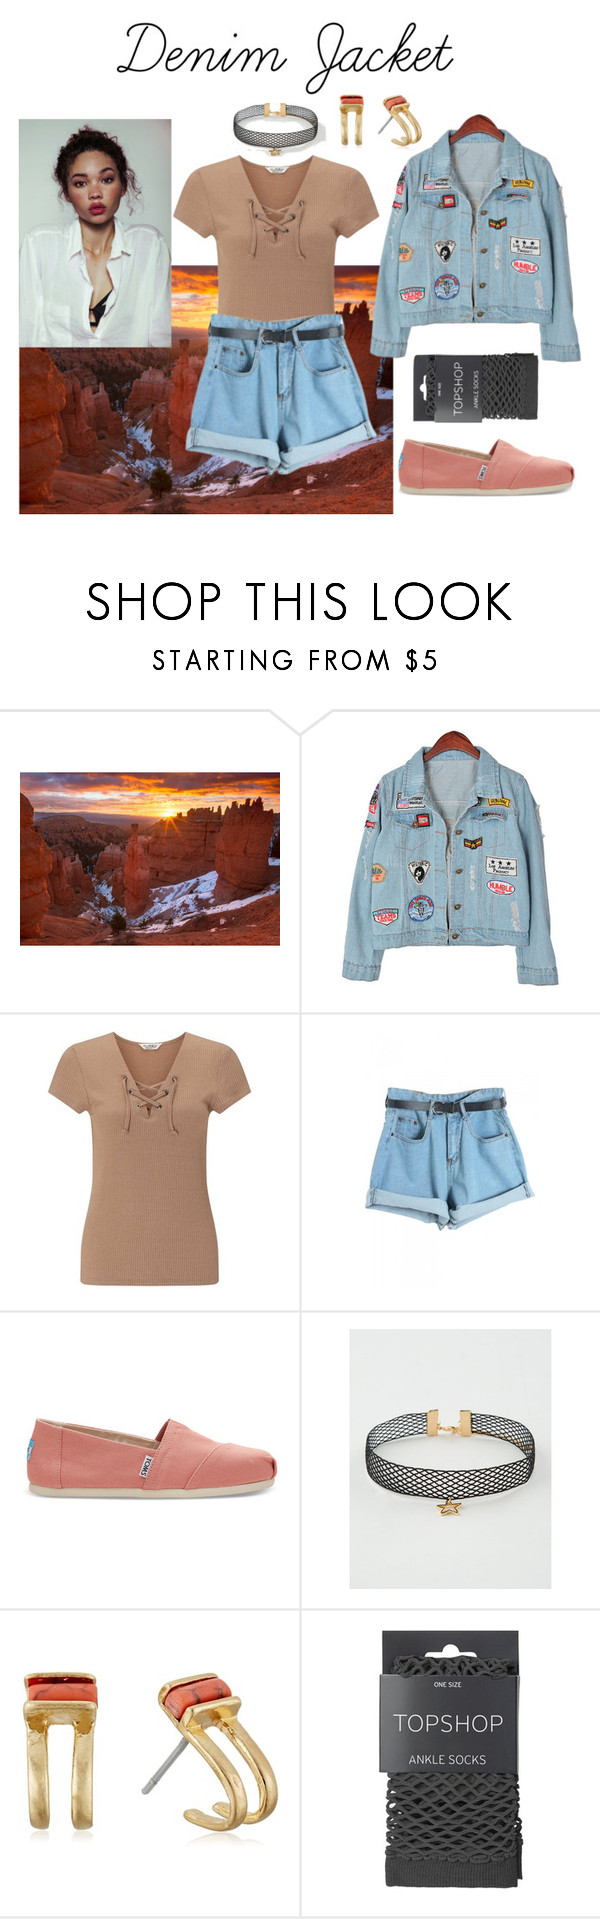 """Denim Jacket"" by sapphire-stone ❤ liked on Polyvore featuring Chicnova Fashion, Miss Selfridge, WithChic, TOMS, Full Tilt, Kenneth Cole and Topshop"